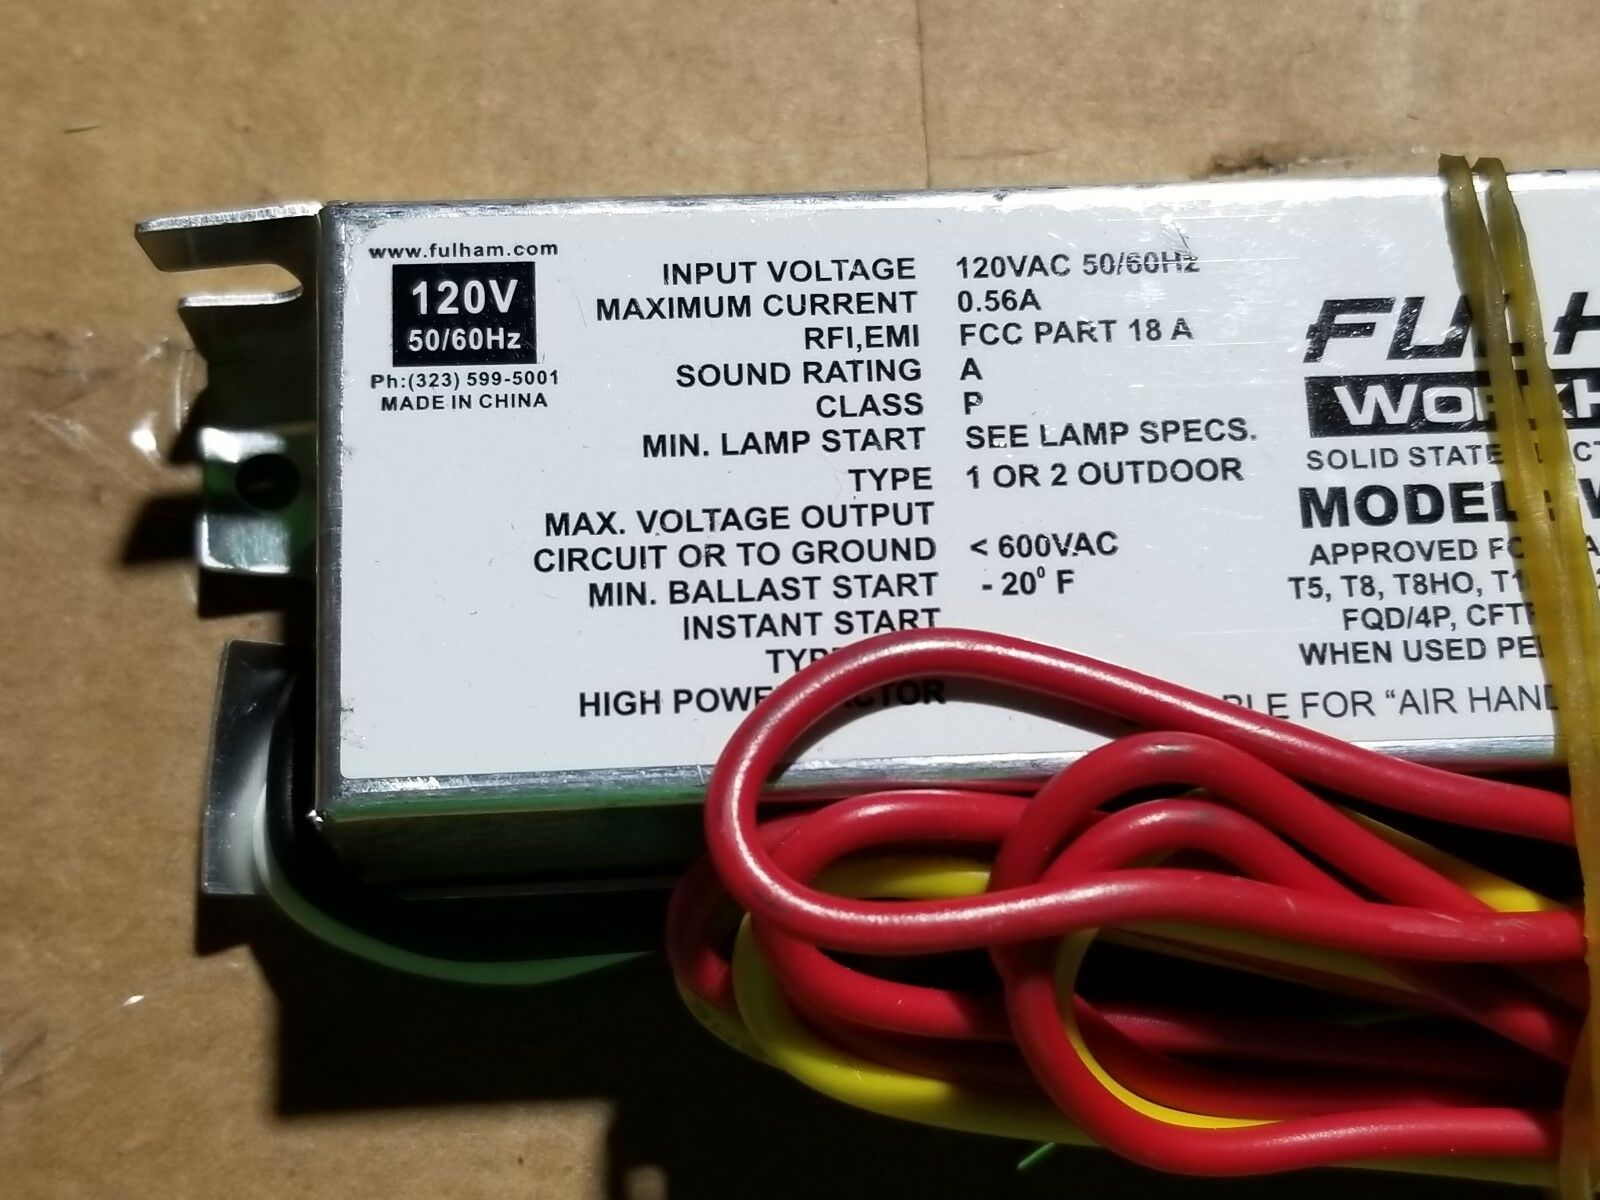 Fulham Wh3 120 L Workhorse F54t5 Adaptable Ballast Hpf Ebay T5 Wiring Diagram Norton Secured Powered By Verisign